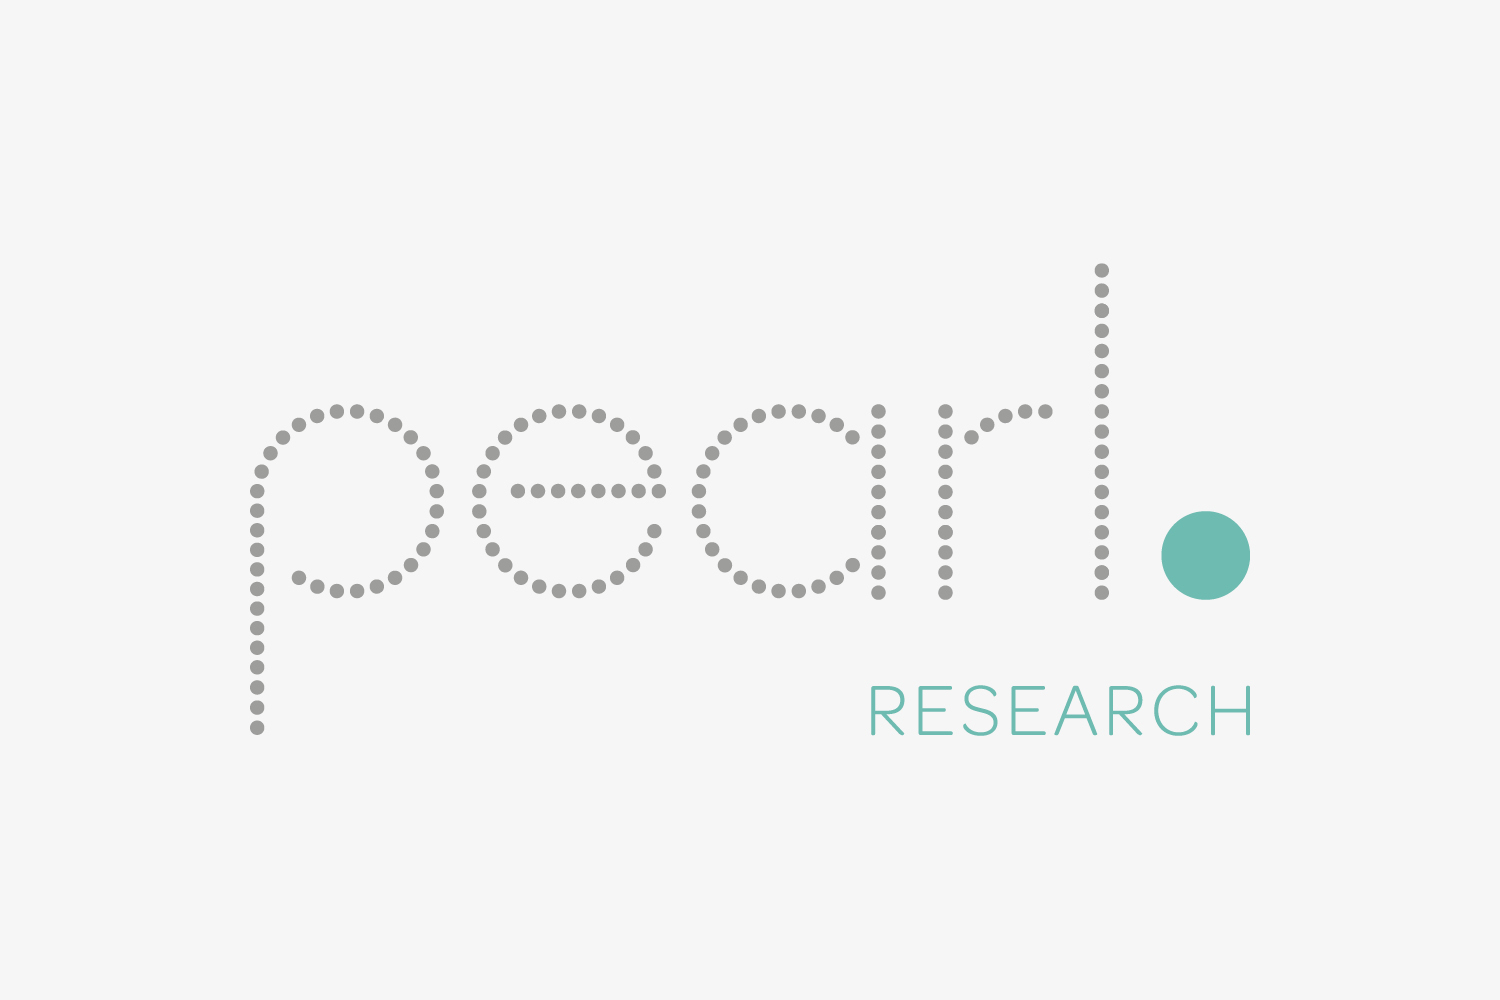 Pearl Research qualitative research services.